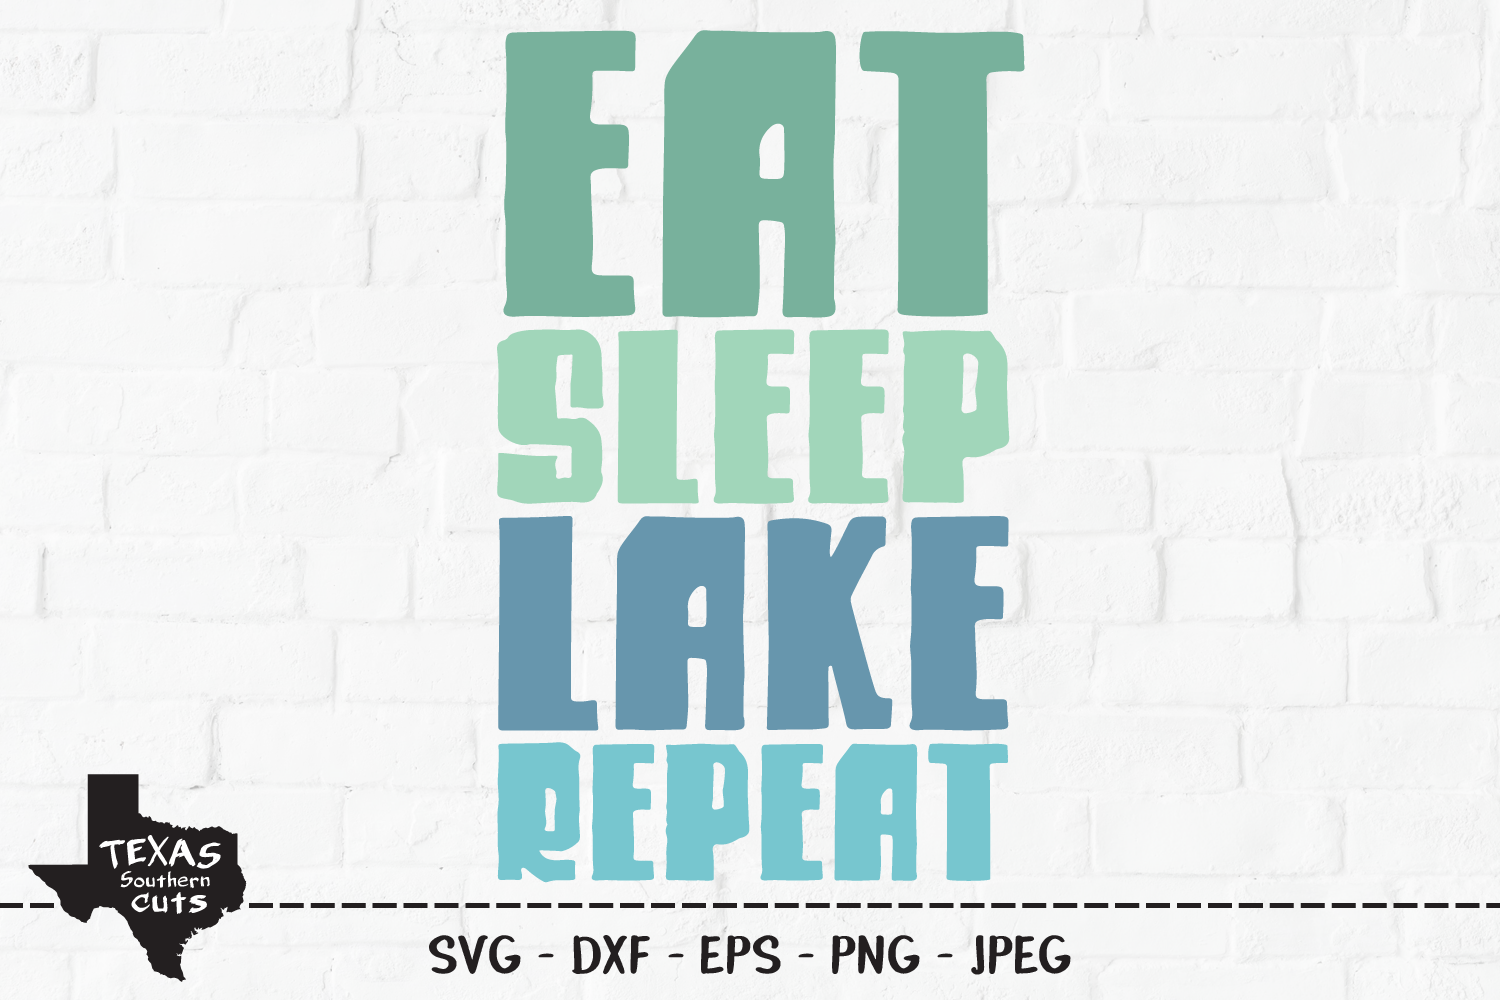 Download Free Eat Sleep Lake Repeat Shirt Design Graphic By for Cricut Explore, Silhouette and other cutting machines.